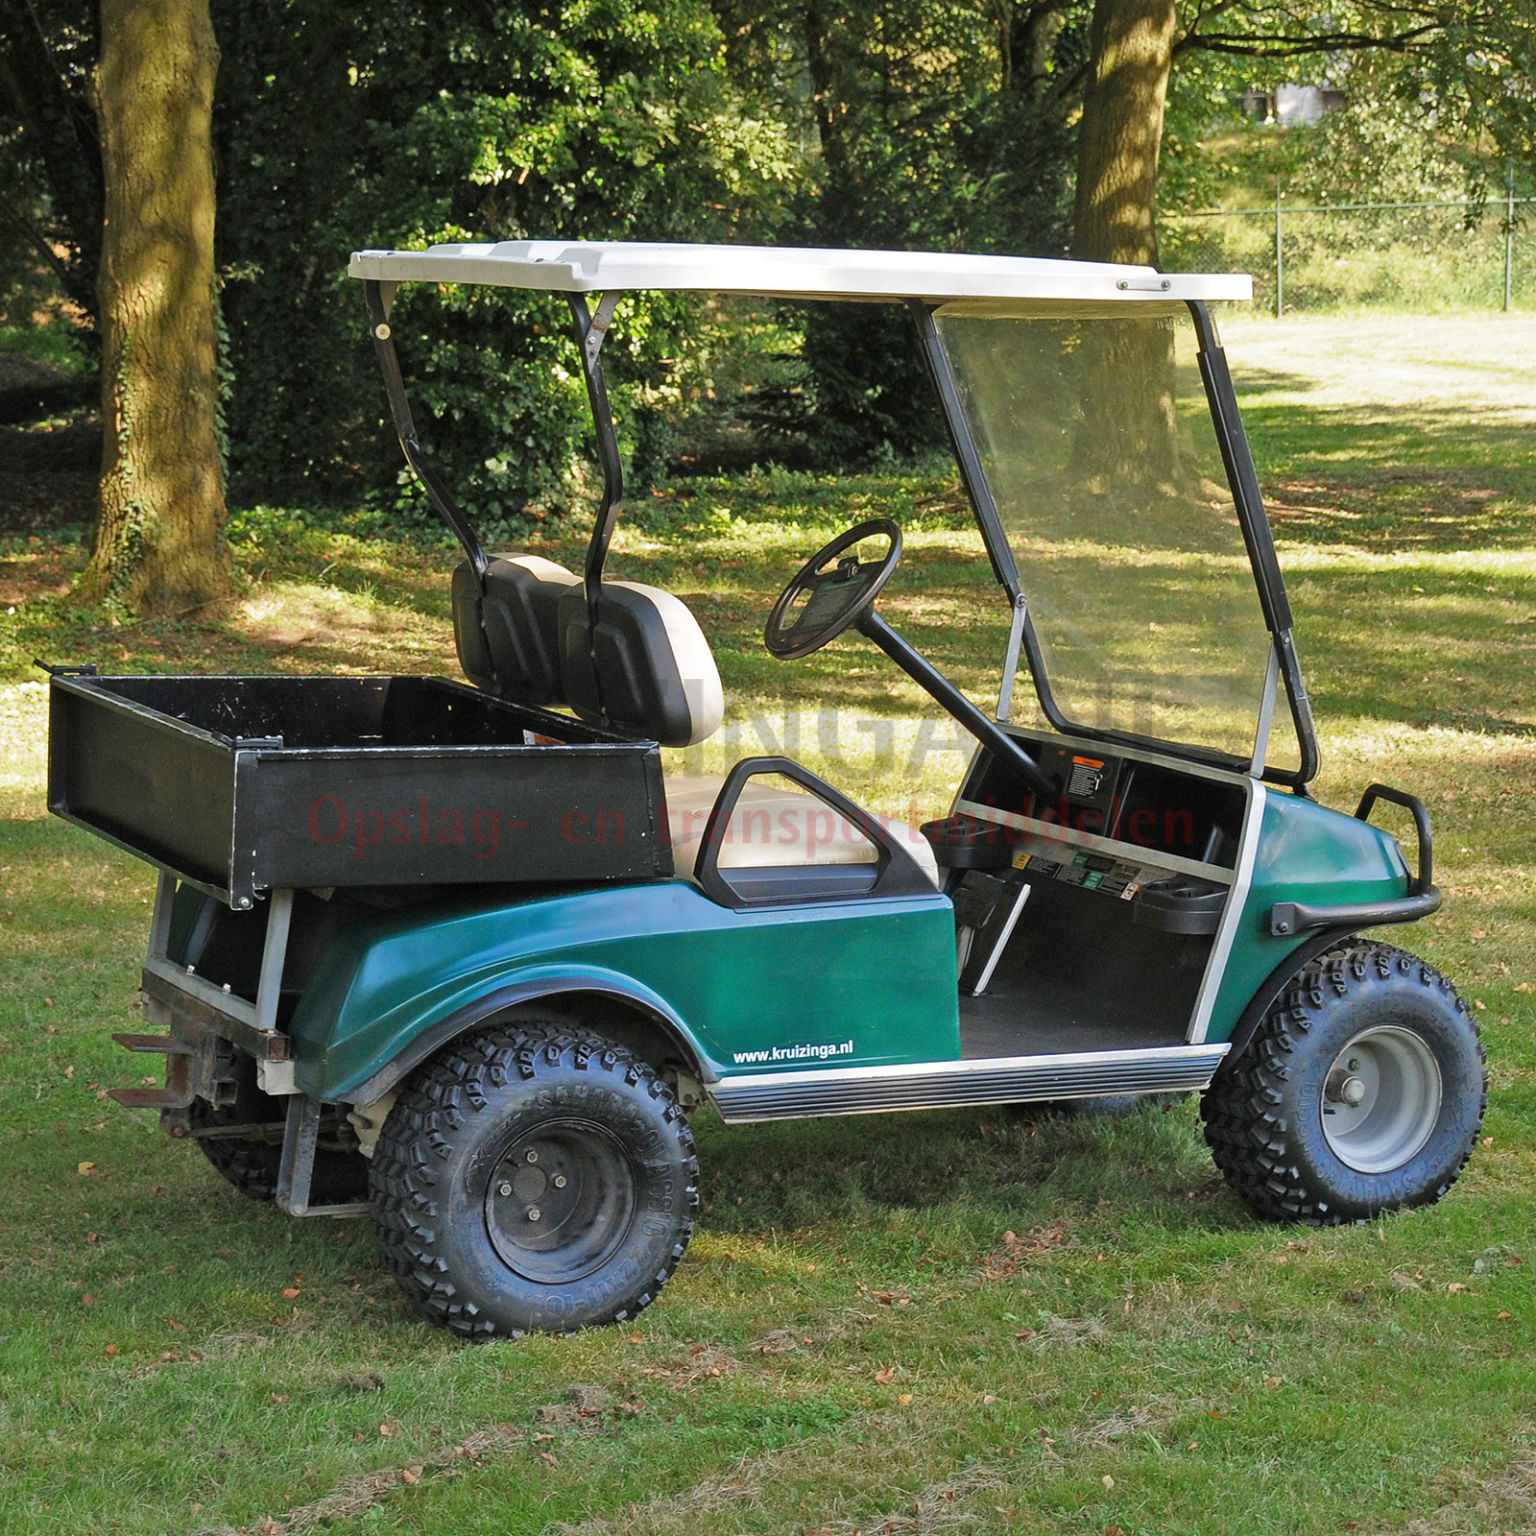 golf cart club car lynx pour 2 personnes incl benne lectrique occasion. Black Bedroom Furniture Sets. Home Design Ideas